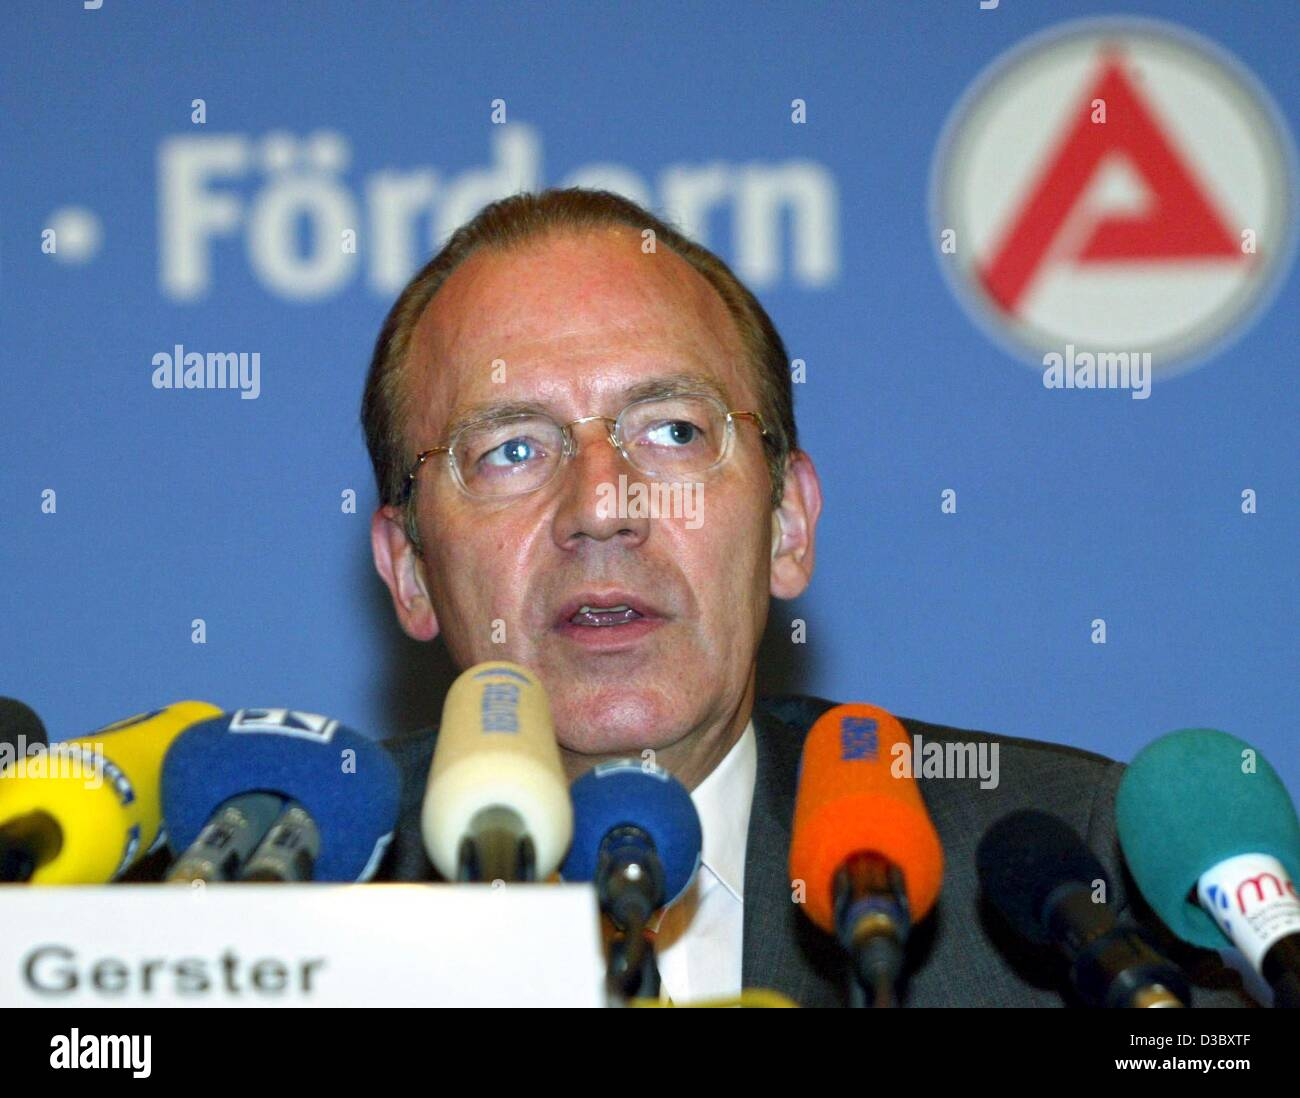 (dpa) - Florian Gerster, Chairman of the Federal Employment Office, speaks in front of the Arbeitsamt (job centre) - Stock Image